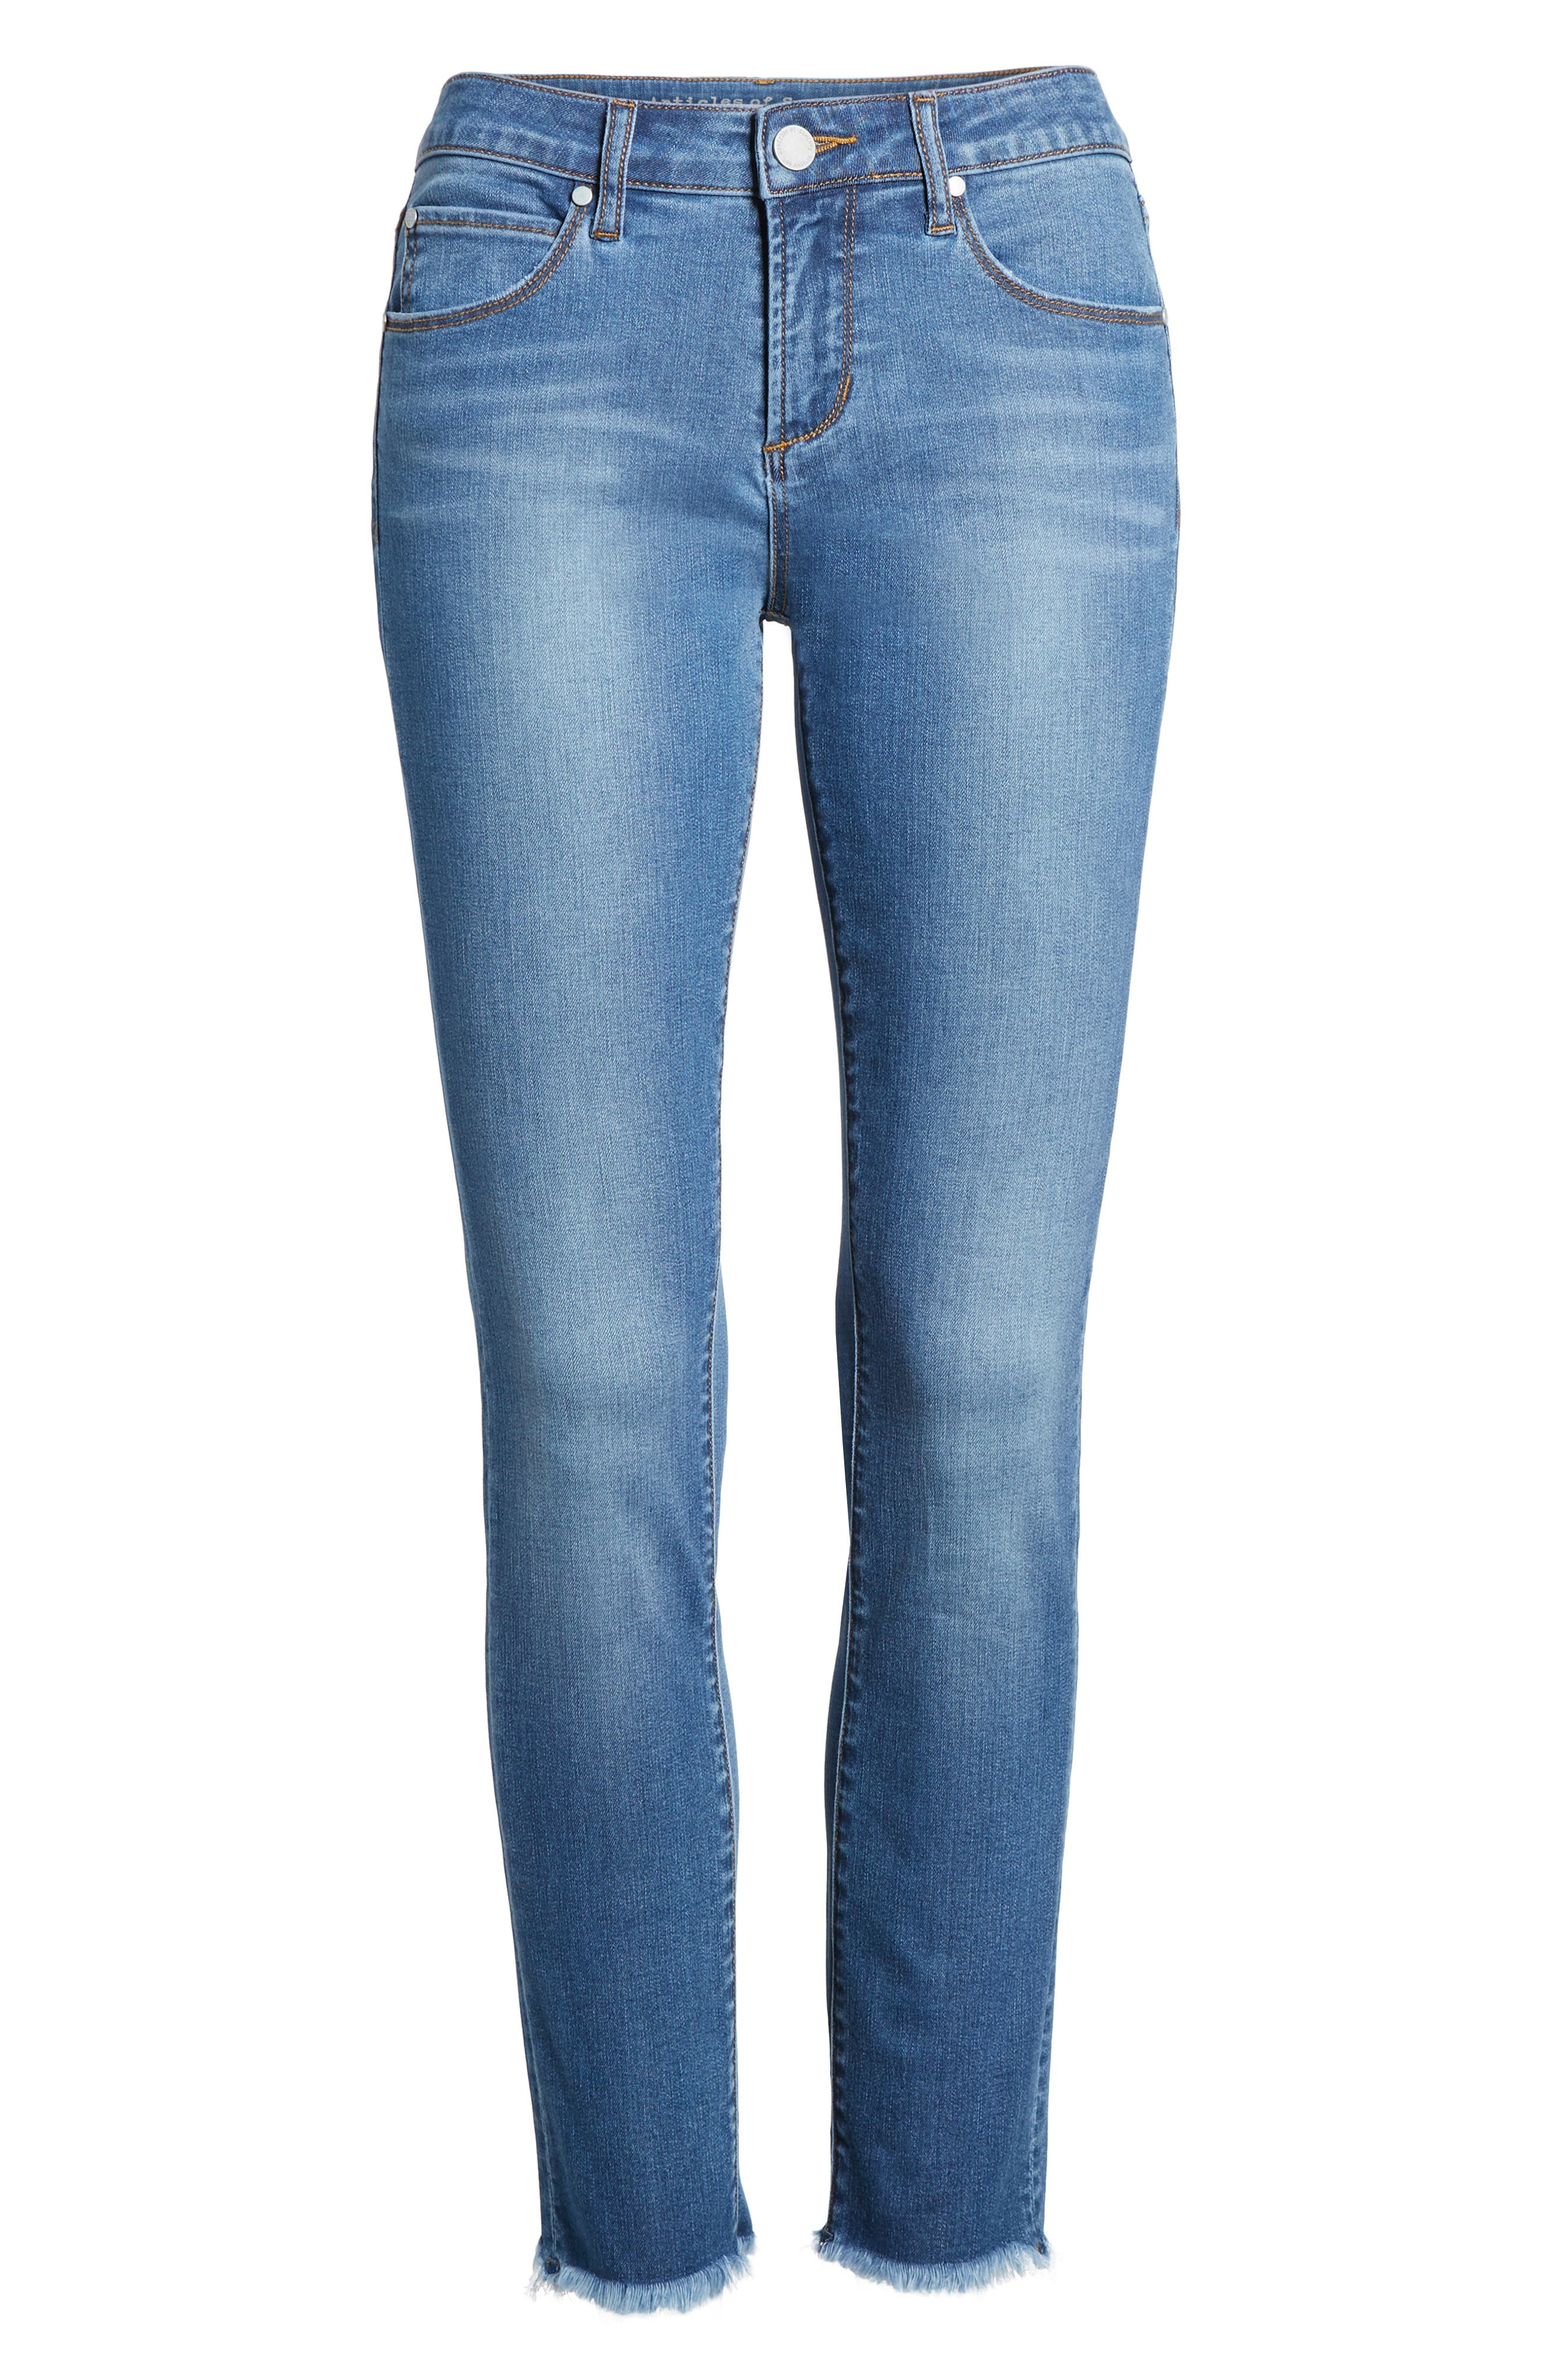 Carly Ankle Skinny Jeans,                             Alternate thumbnail 7, color,                             400